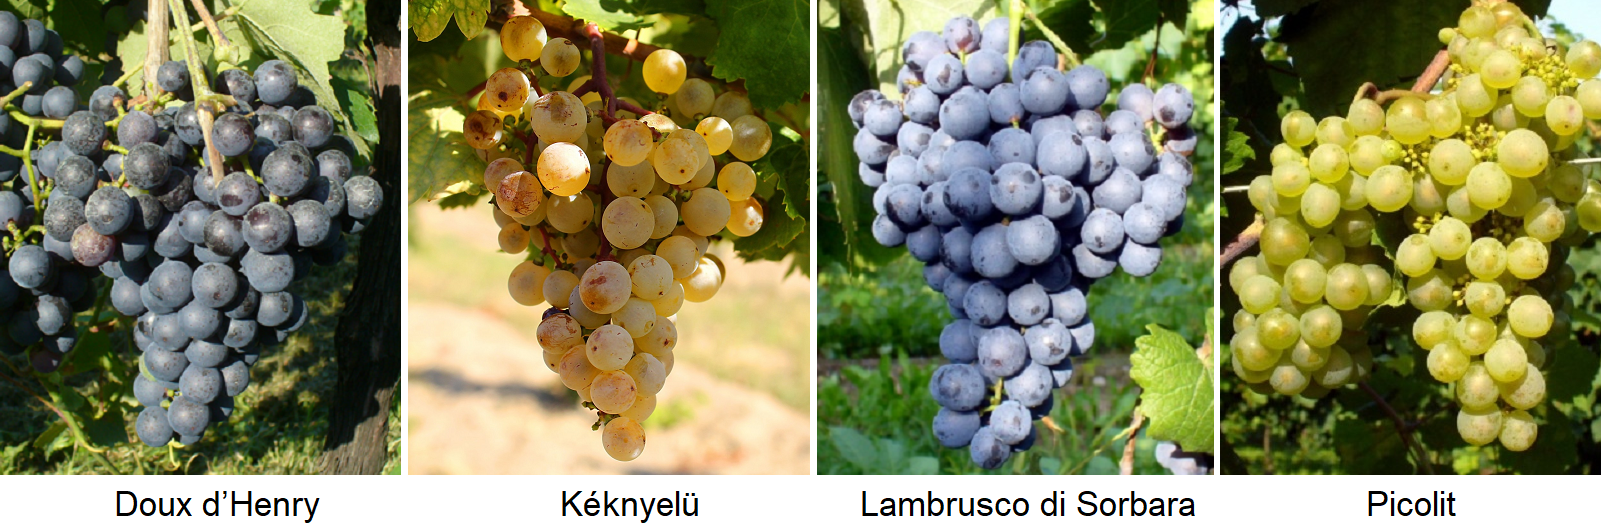 female grape varieties: Doux d'Henry, Kéknyelü, Lambrusco di Sorbara, Picolit